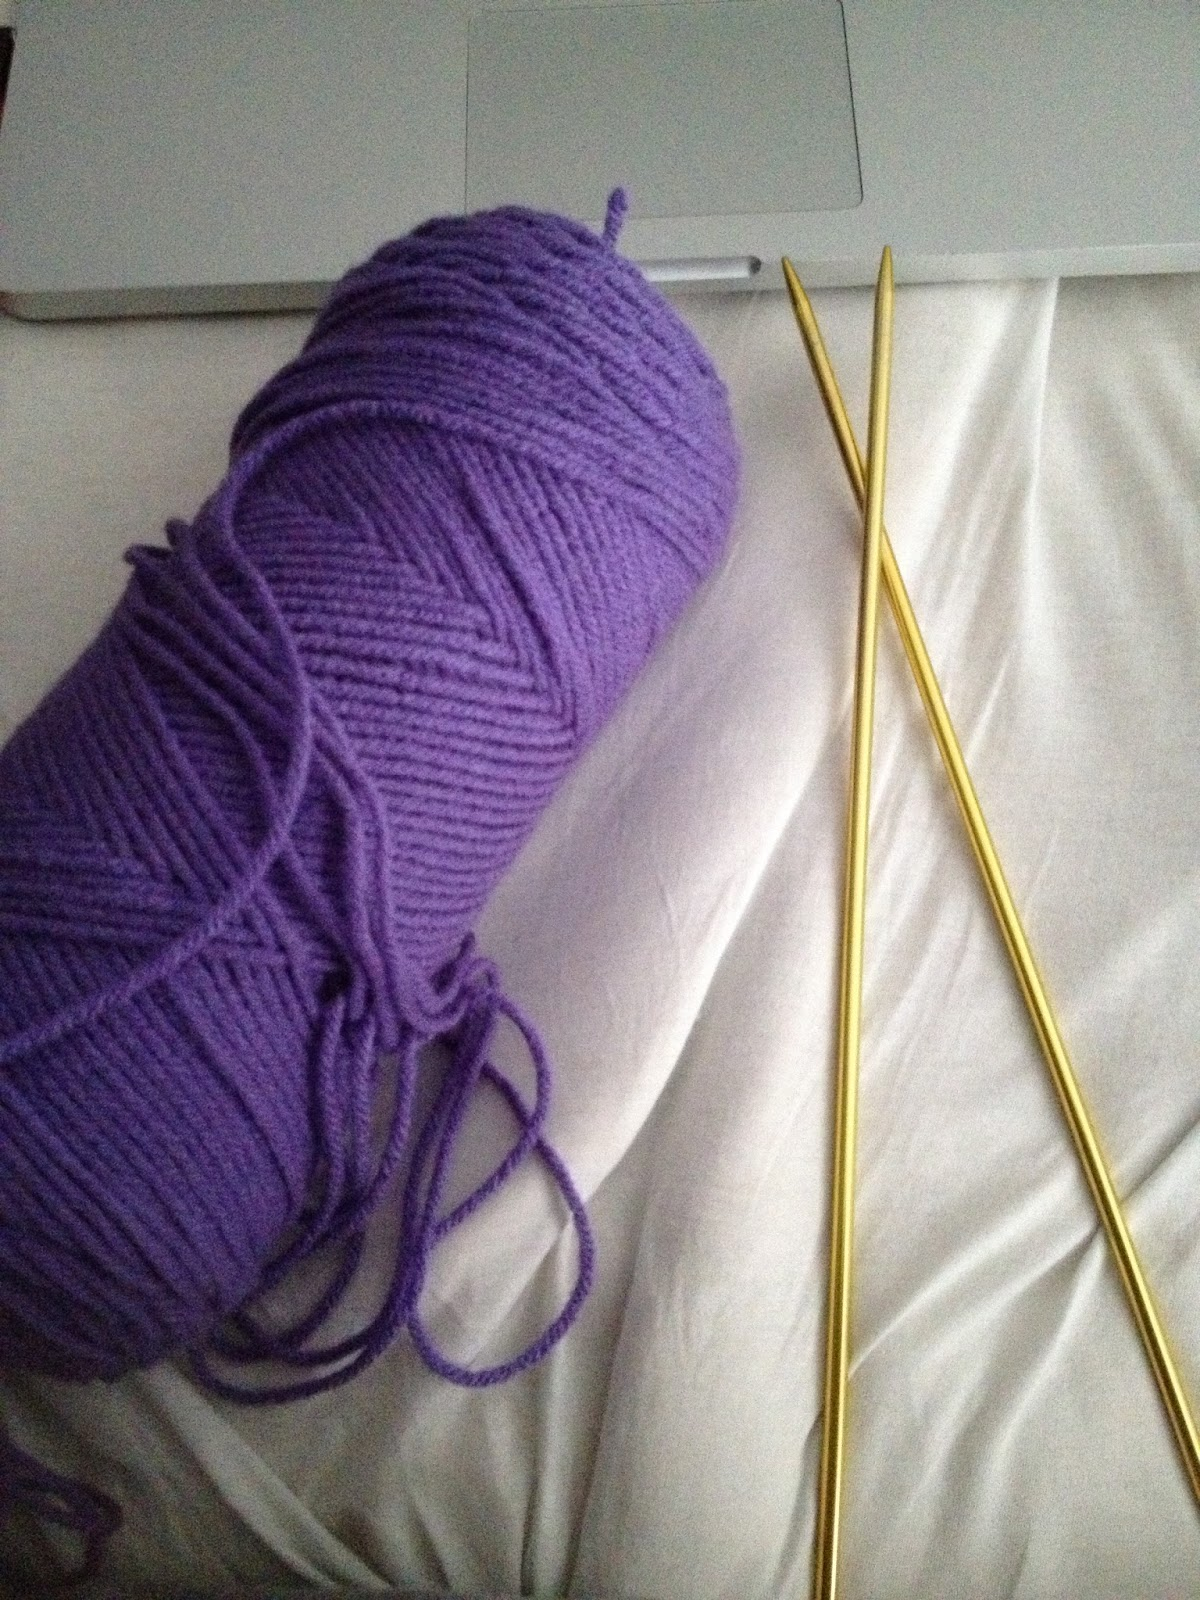 Knitting Cast On Long Tail Method : Knit your life how to cast on using the long tail method